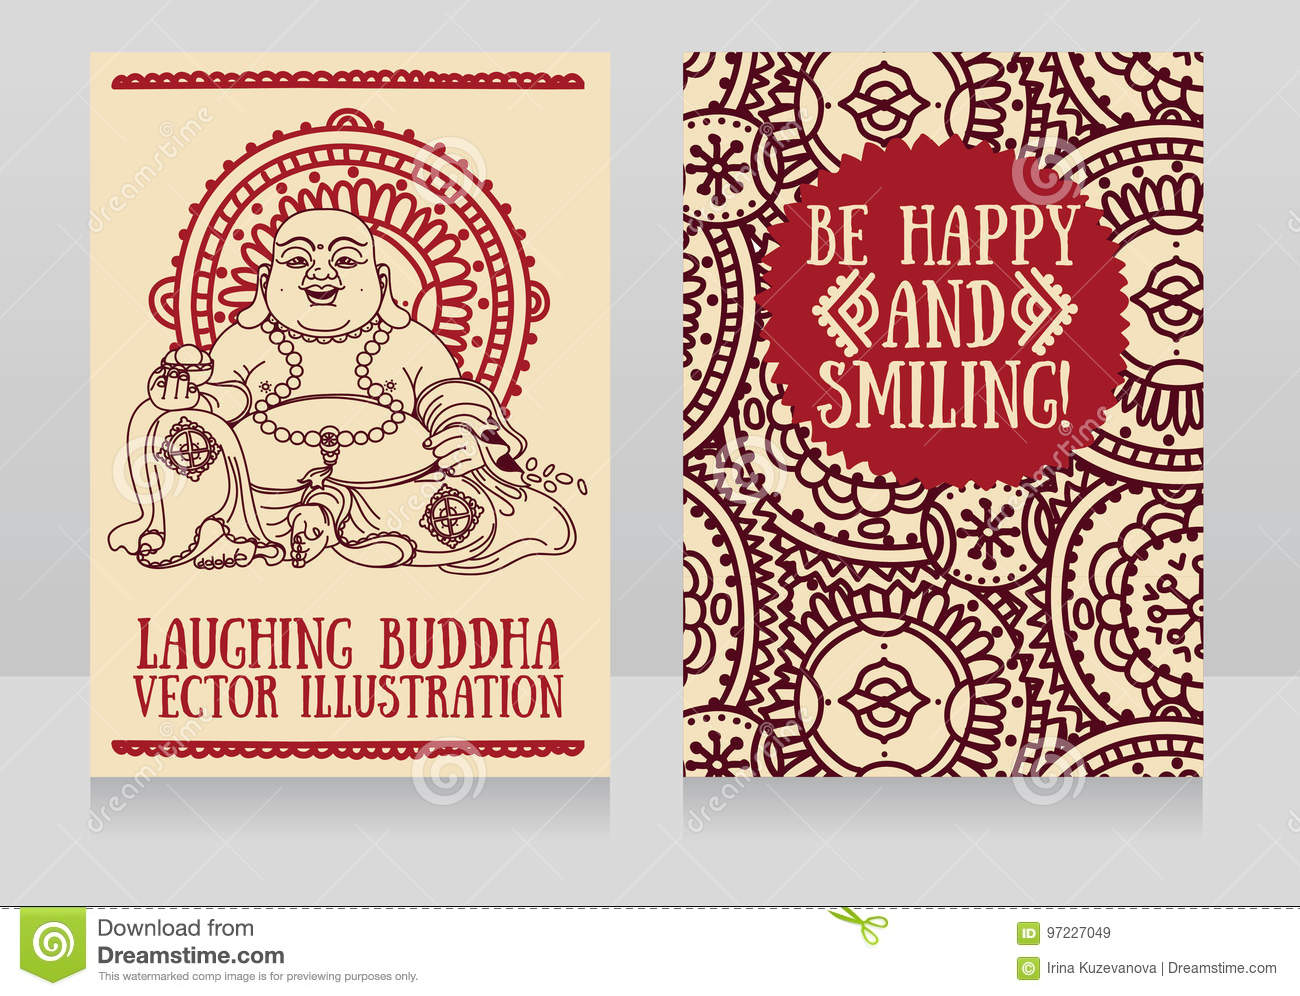 Greeting cards with Laughing Buddha